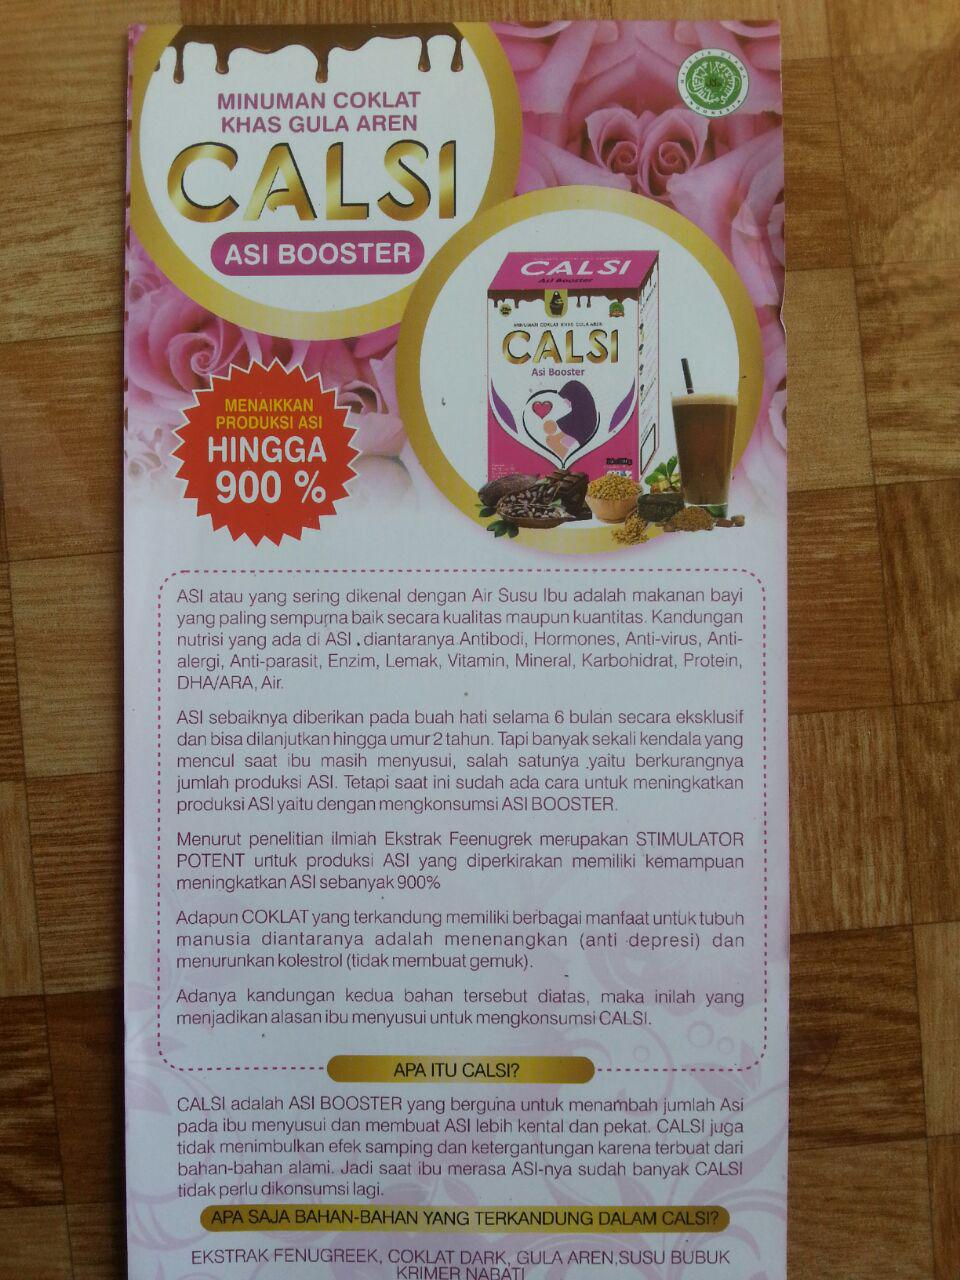 Herbal Calsi Asi Booster Minuman Coklat Khas Gula Aren isi 2